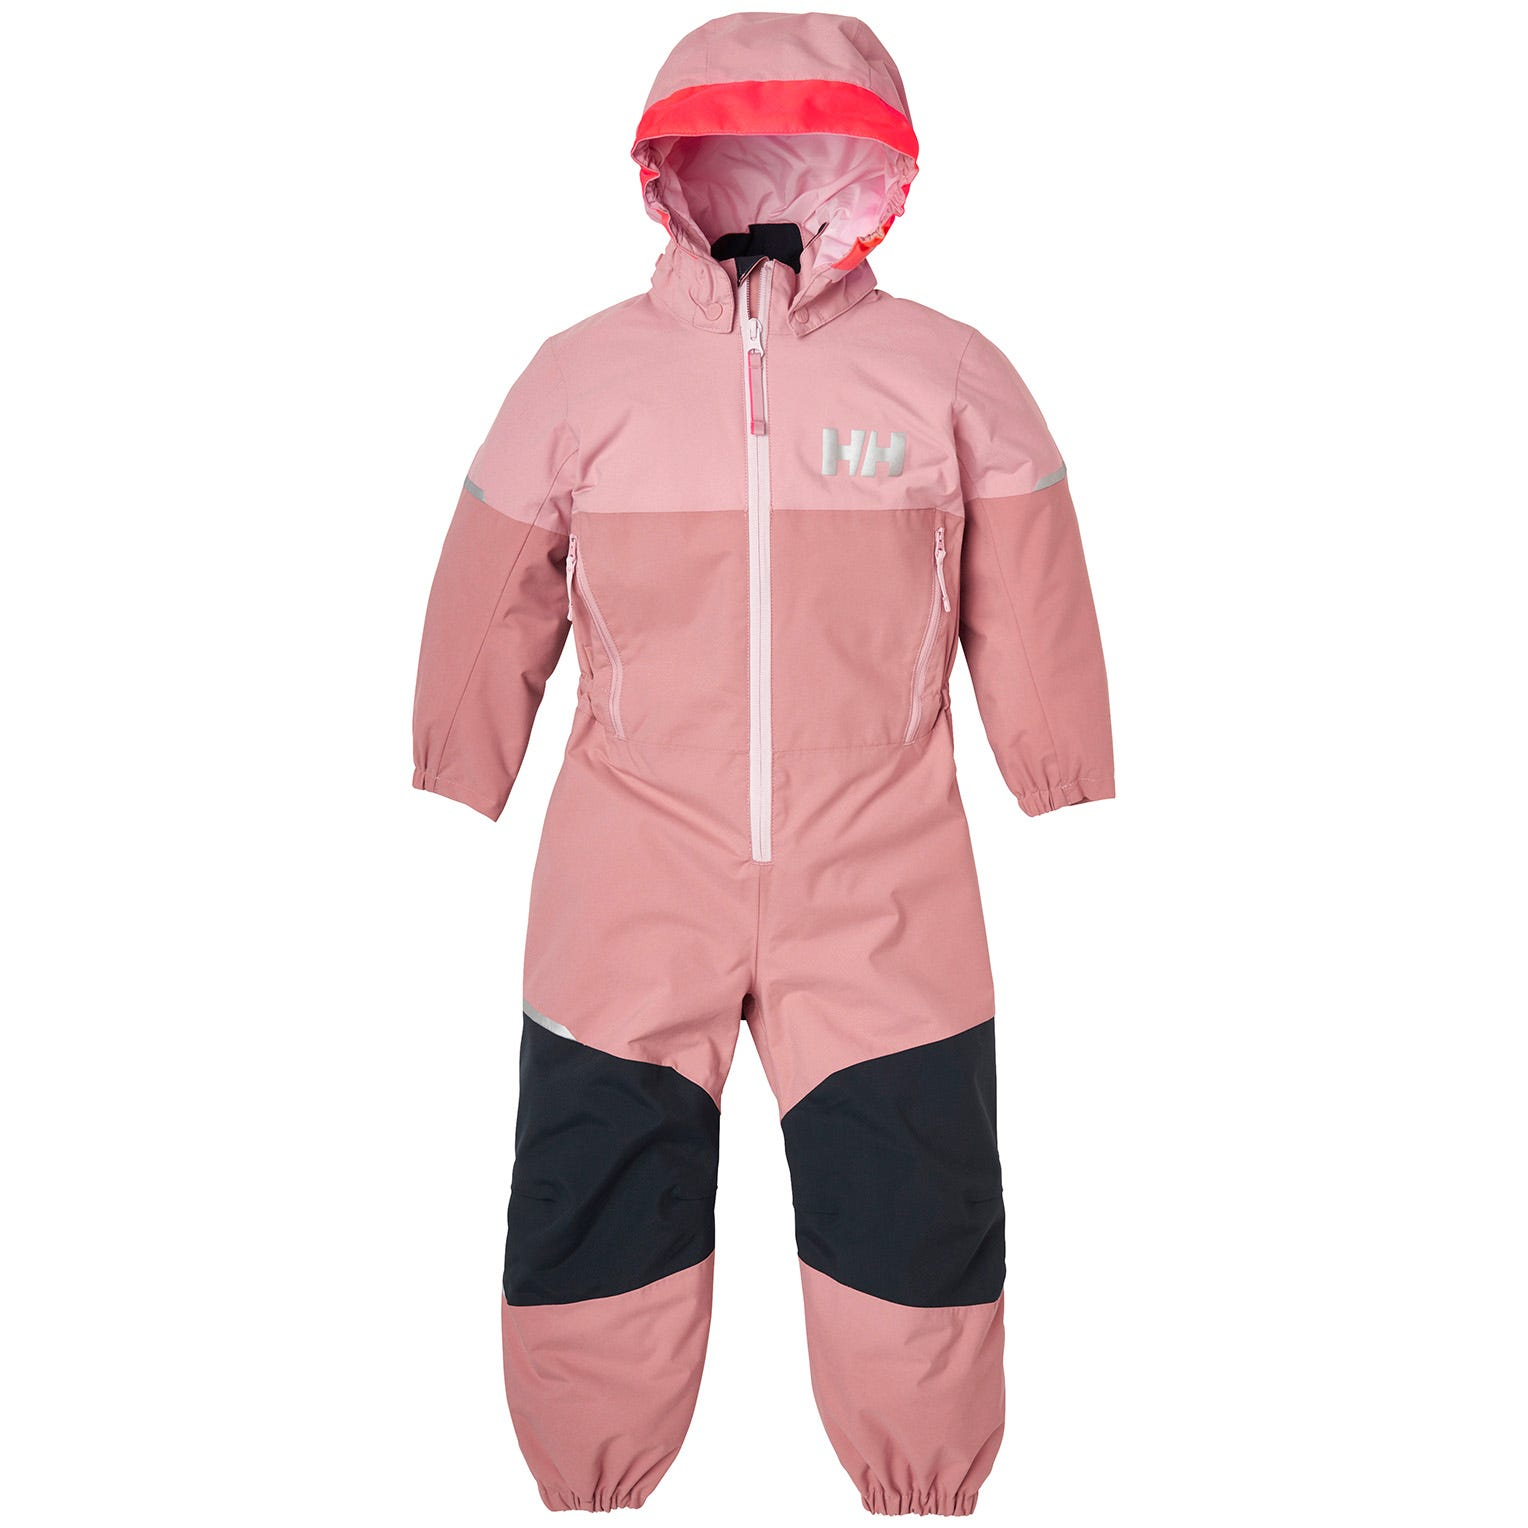 Helly Hansen Kids Sogn Full Protection Outdoor Playsuit Pink 110/5